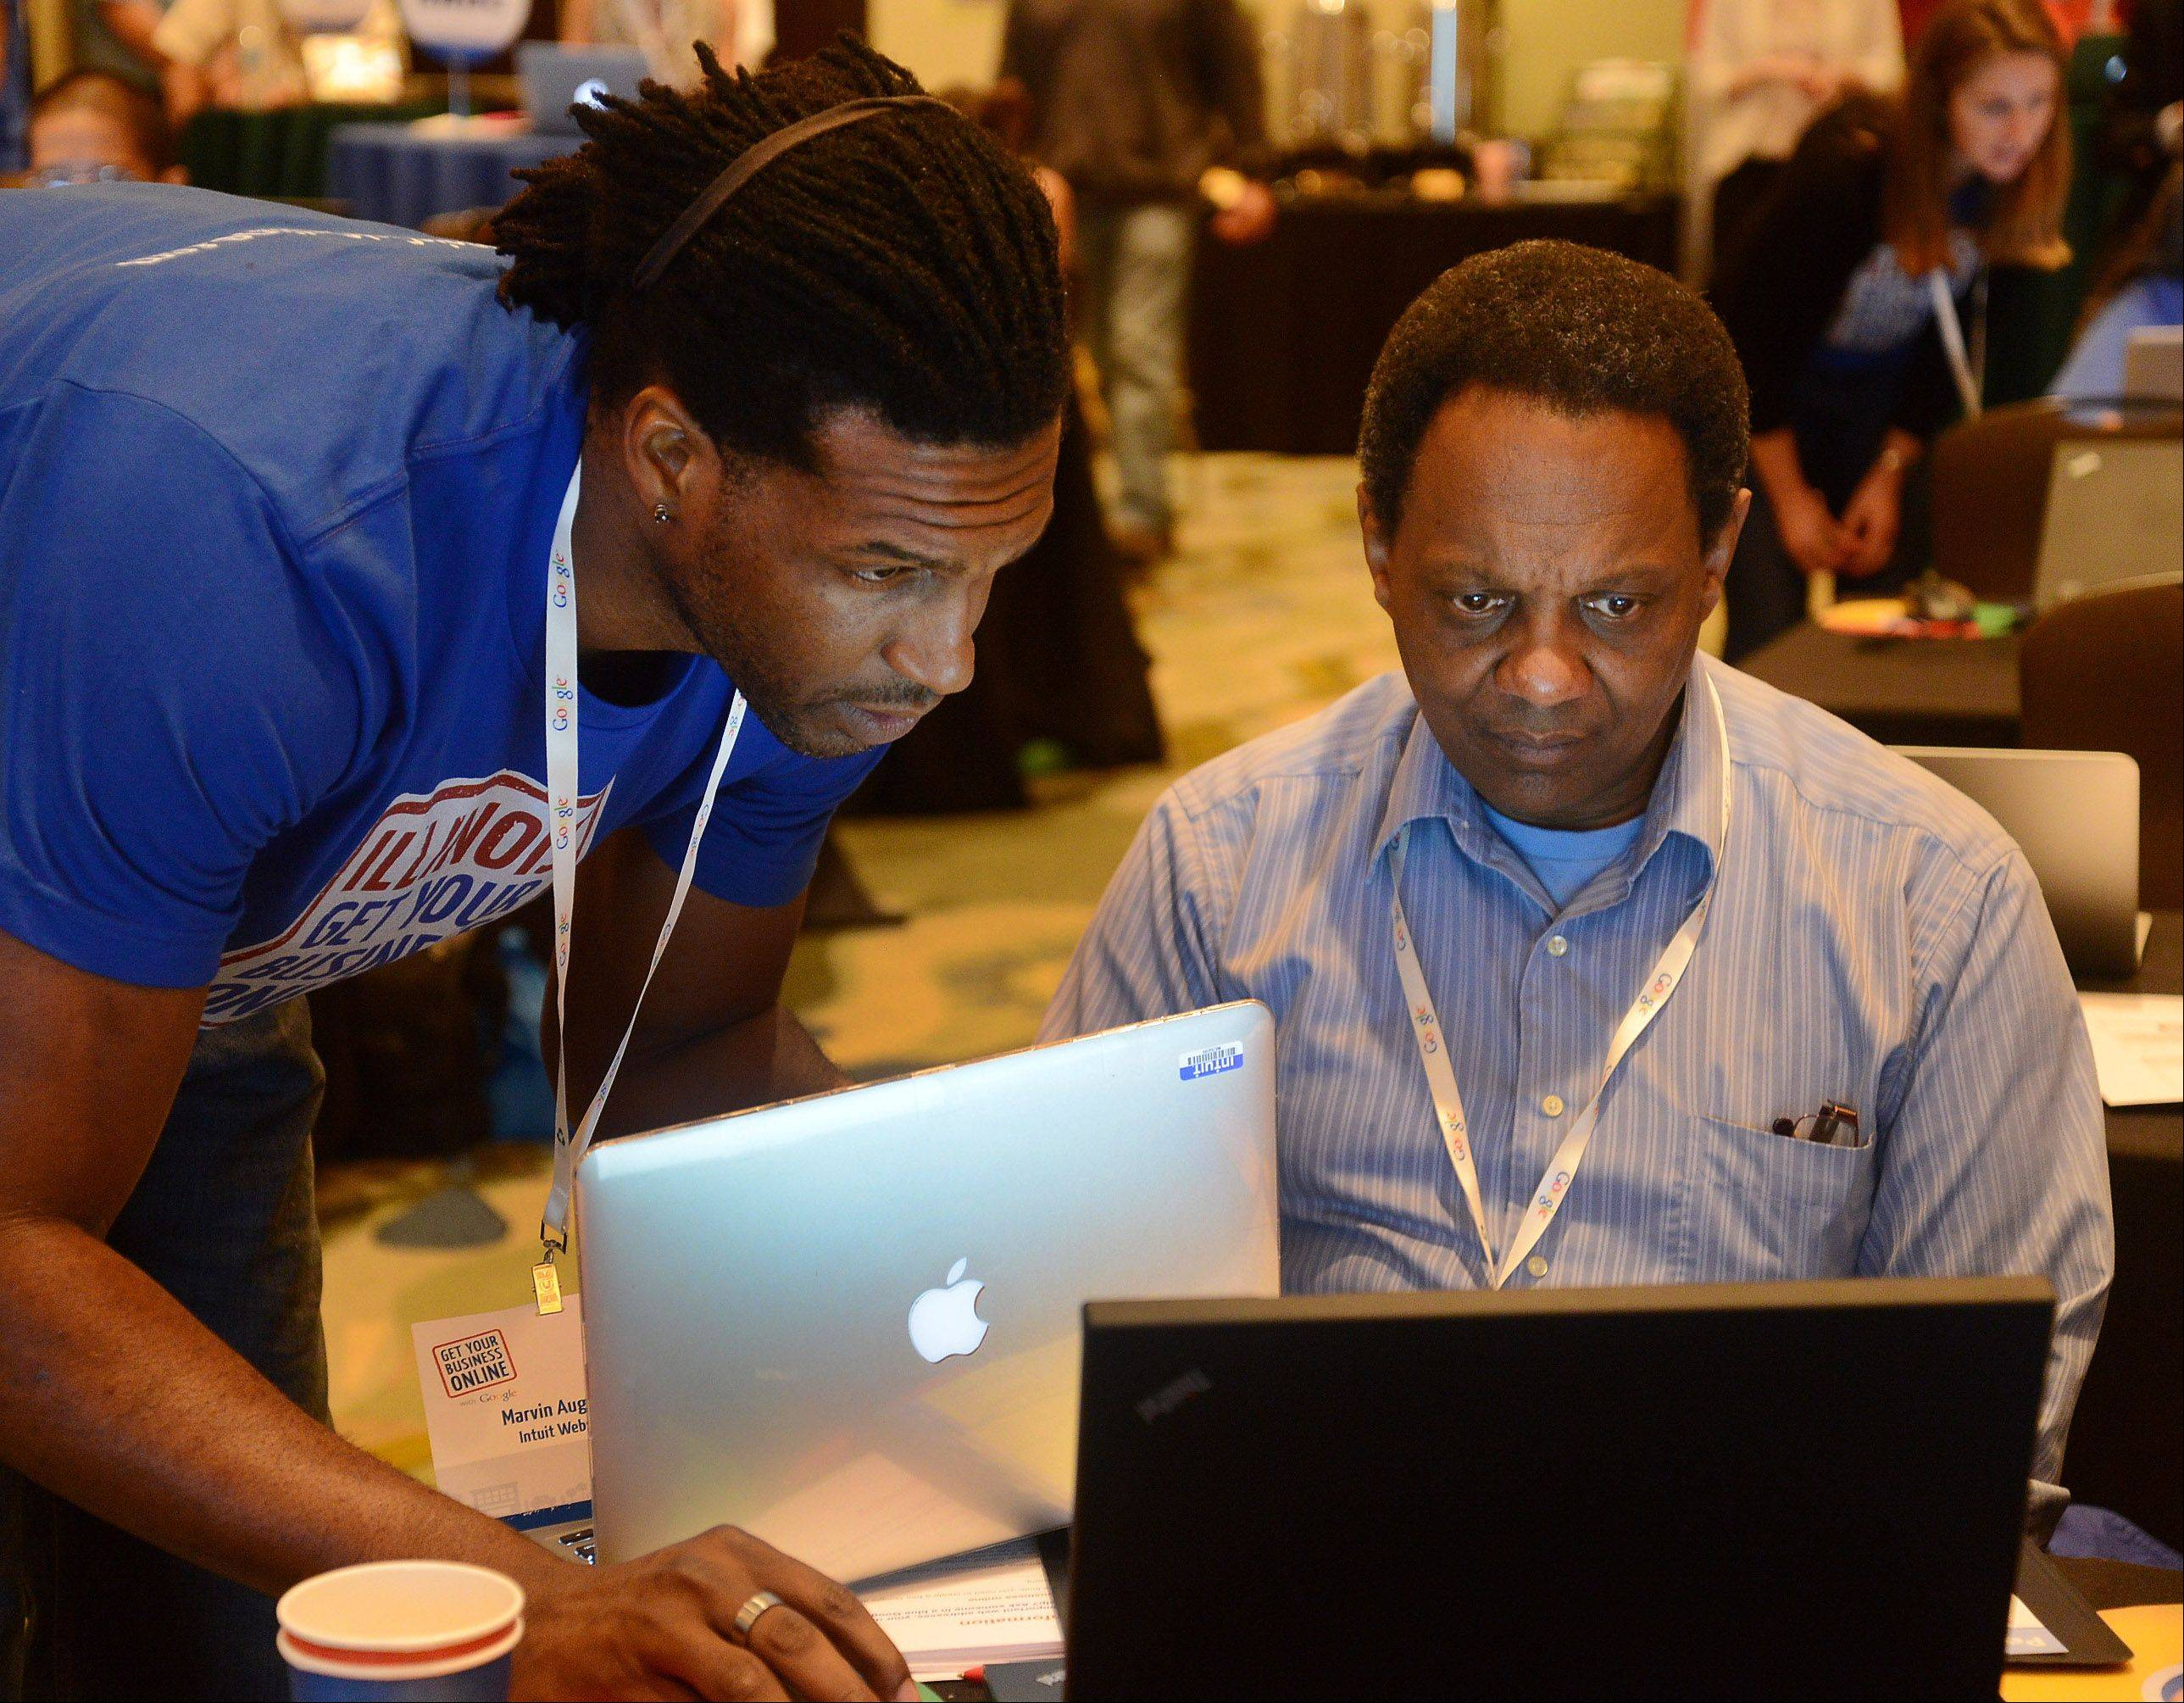 Marvin Augustin of Intuit web design, left, helps James Harvey of James Harvey Photography in Elgin, at Google's event Wednesday to help local businesses get a functional website up and running for free.